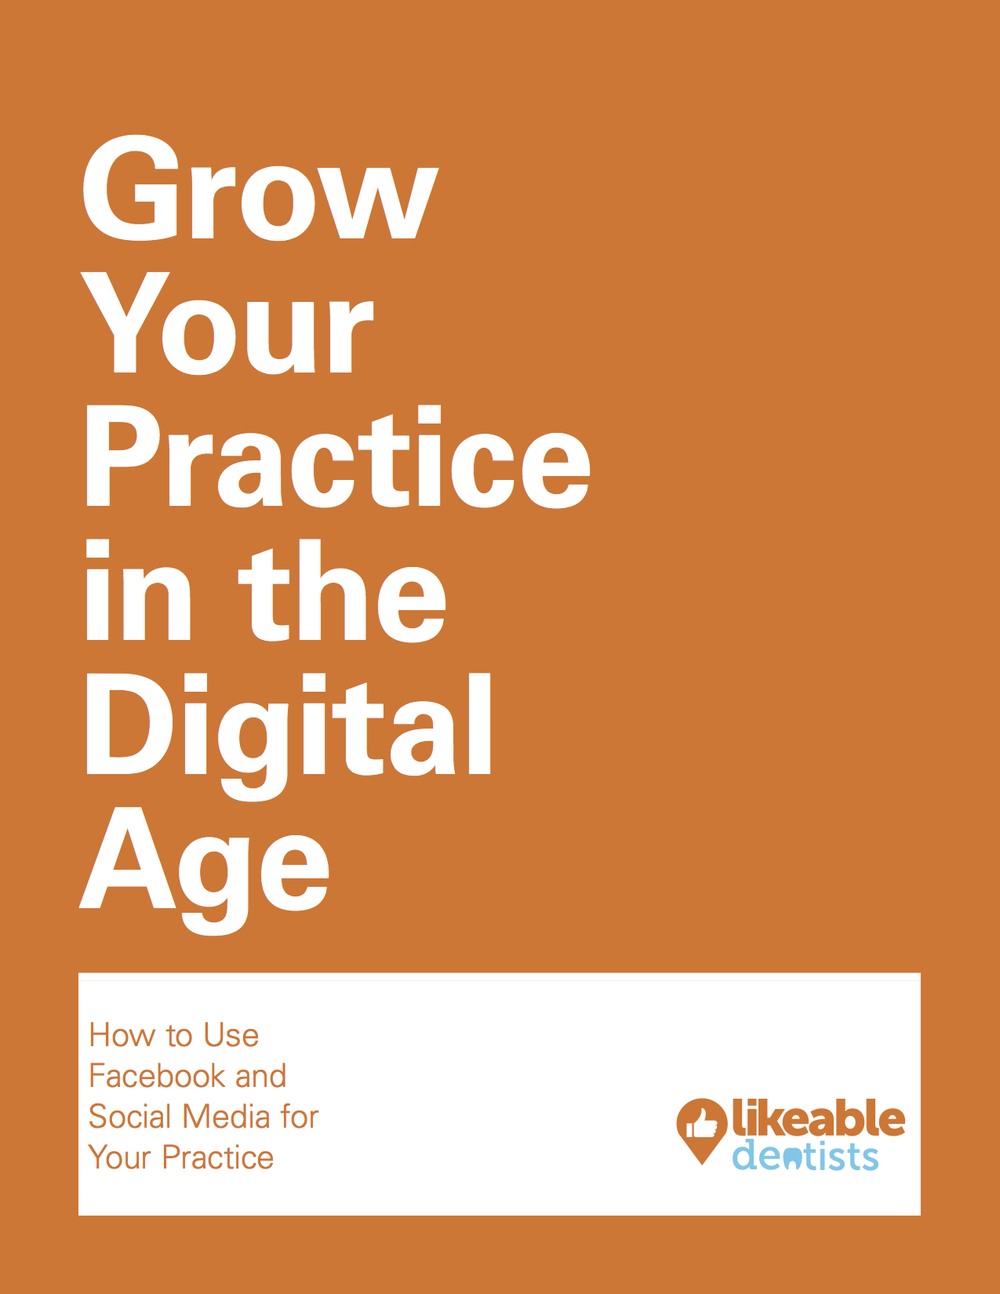 Grow-Your-Practice-Likeable-Dentists-eBook.jpg